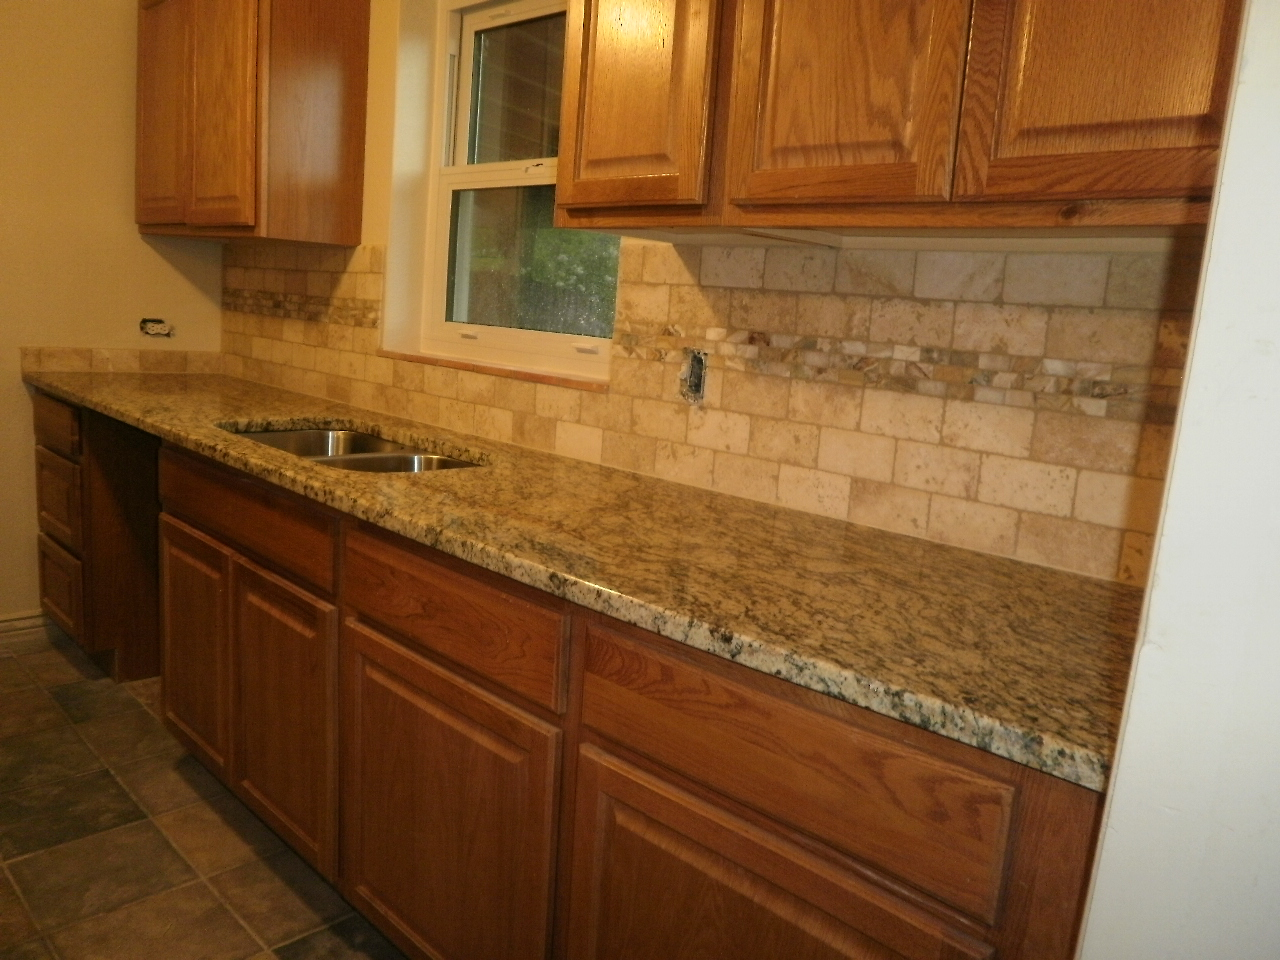 Kitchen tile backsplash design ideas 2017 kitchen design ideas Kitchen design with granite countertops